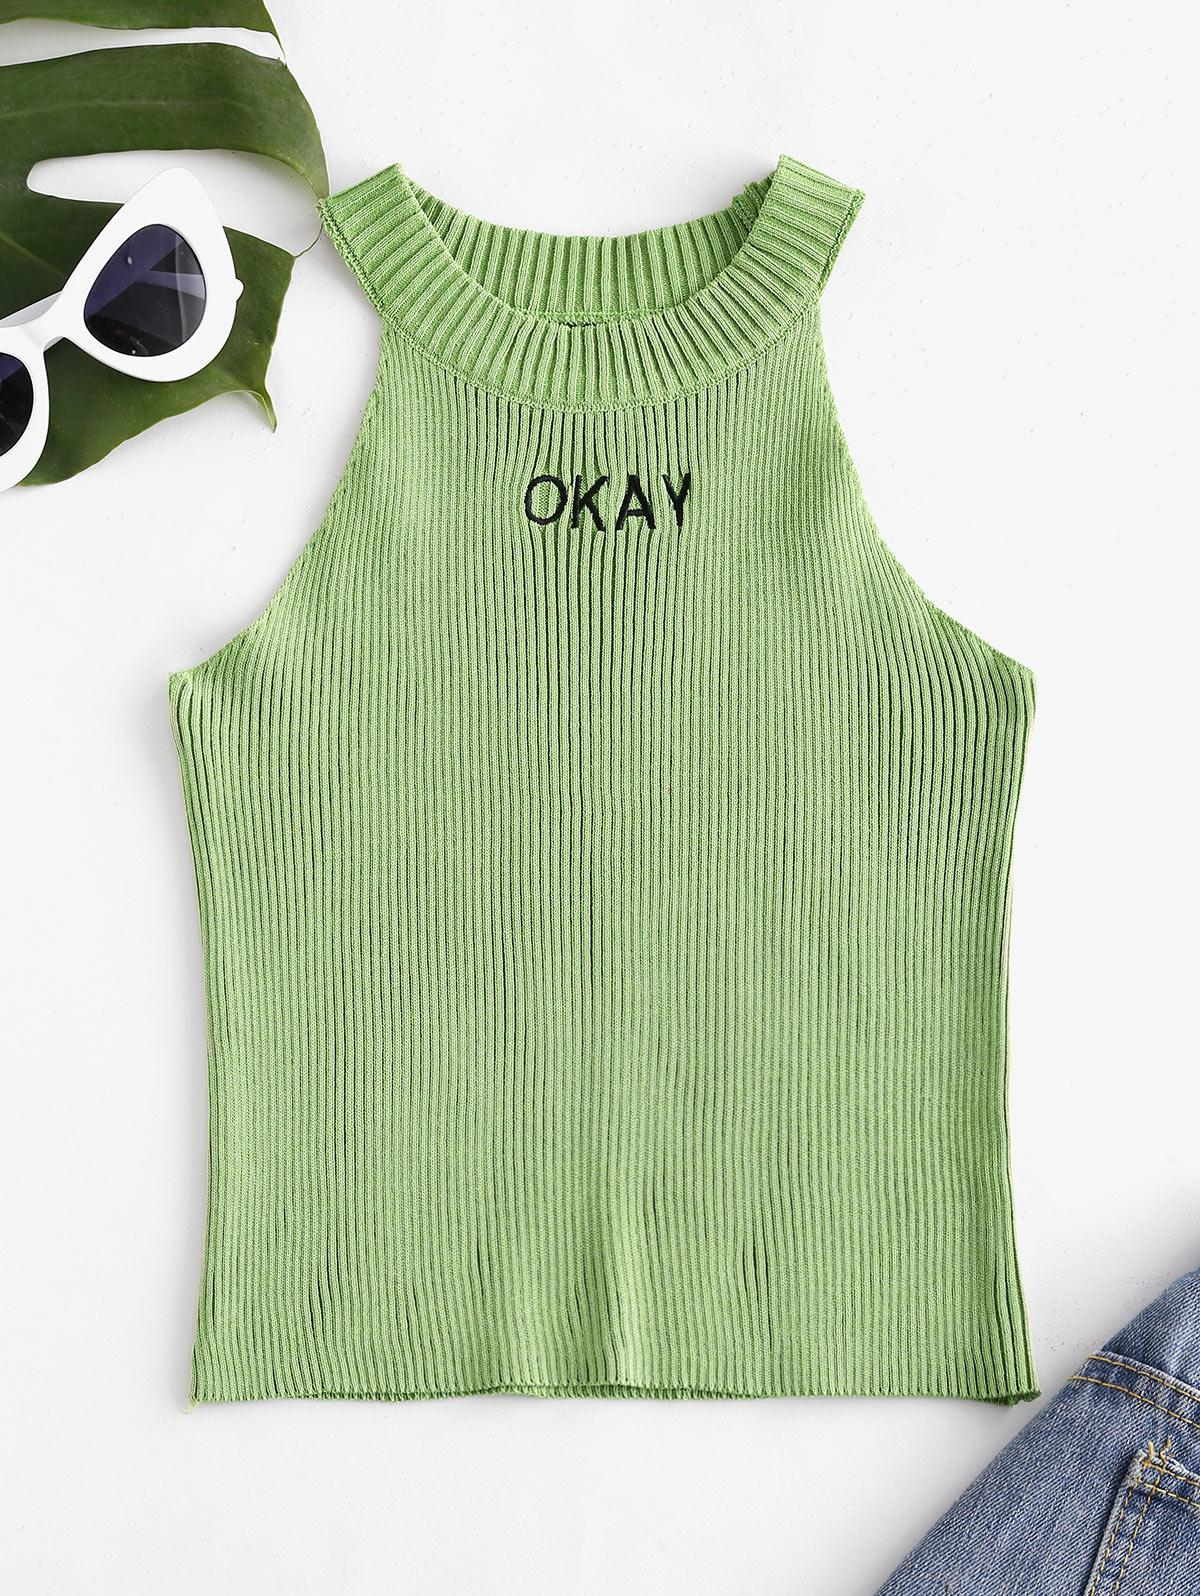 Ribbed Okay Embroidered Knit Slim Tank Top